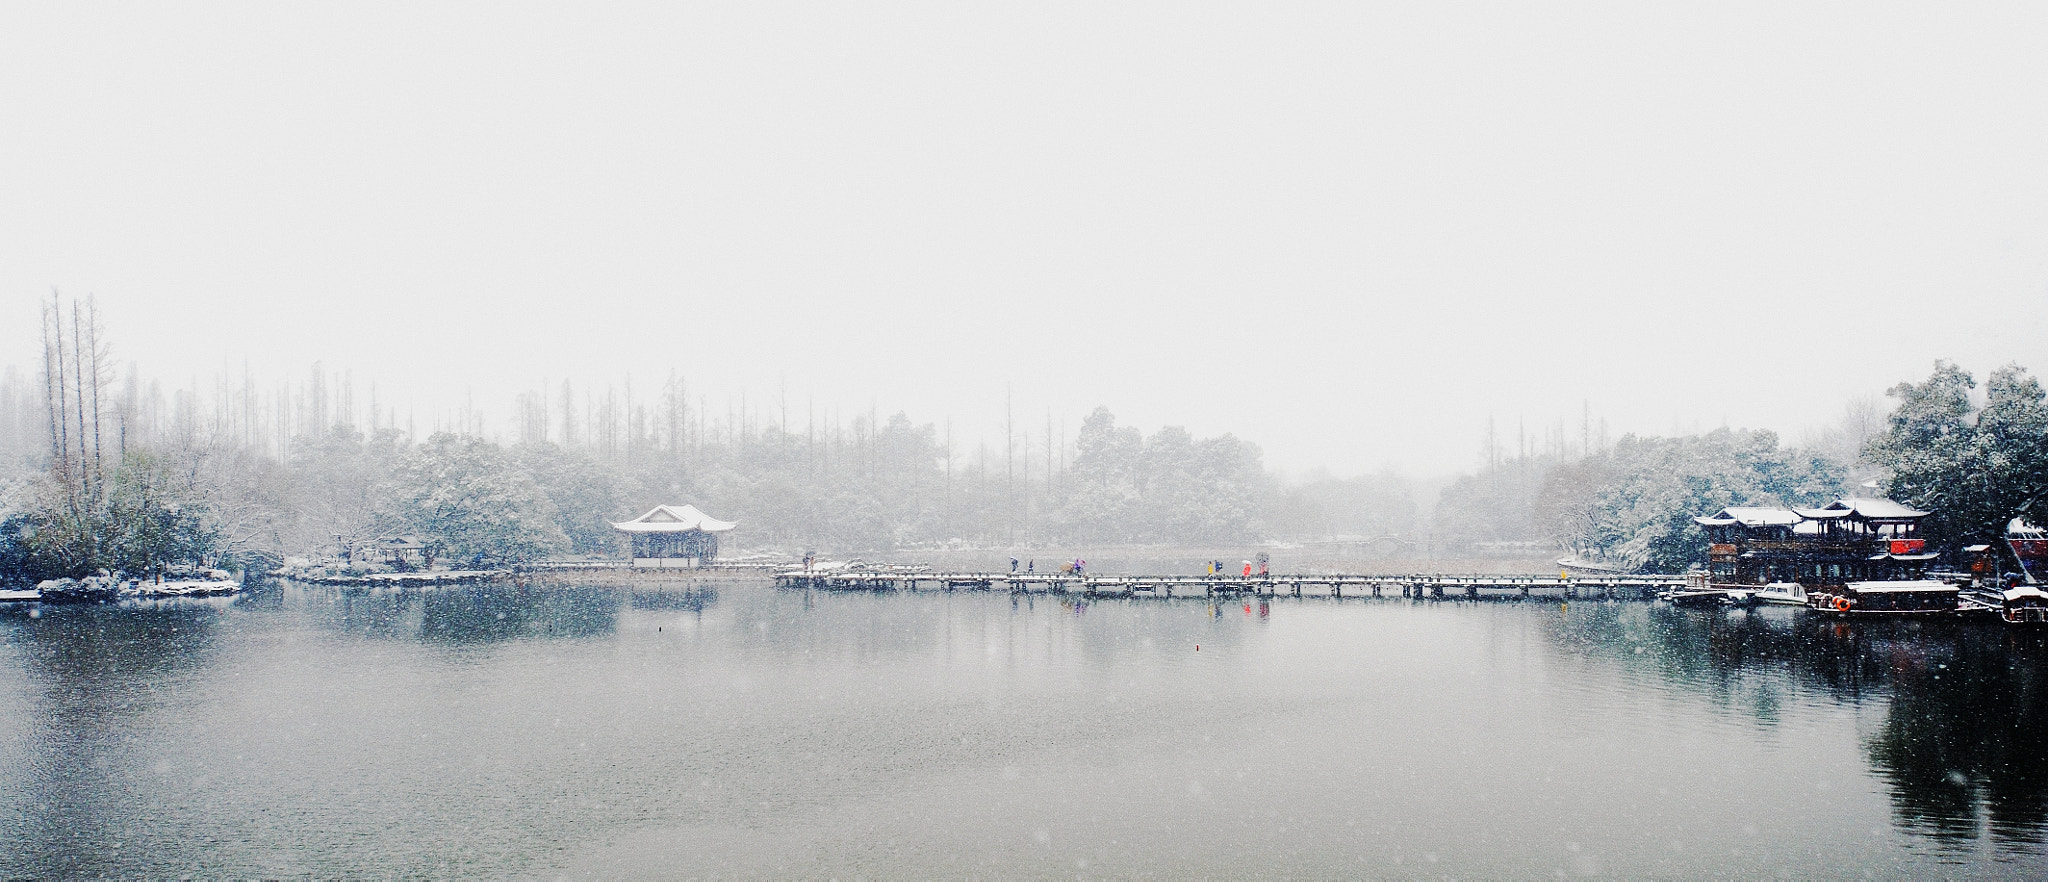 Photograph Winter in Hangzhou, West Lake 杭州, 西湖冬季 #06 ~ an appreciation of Chinese landscapes by Eddie Cheng on 500px